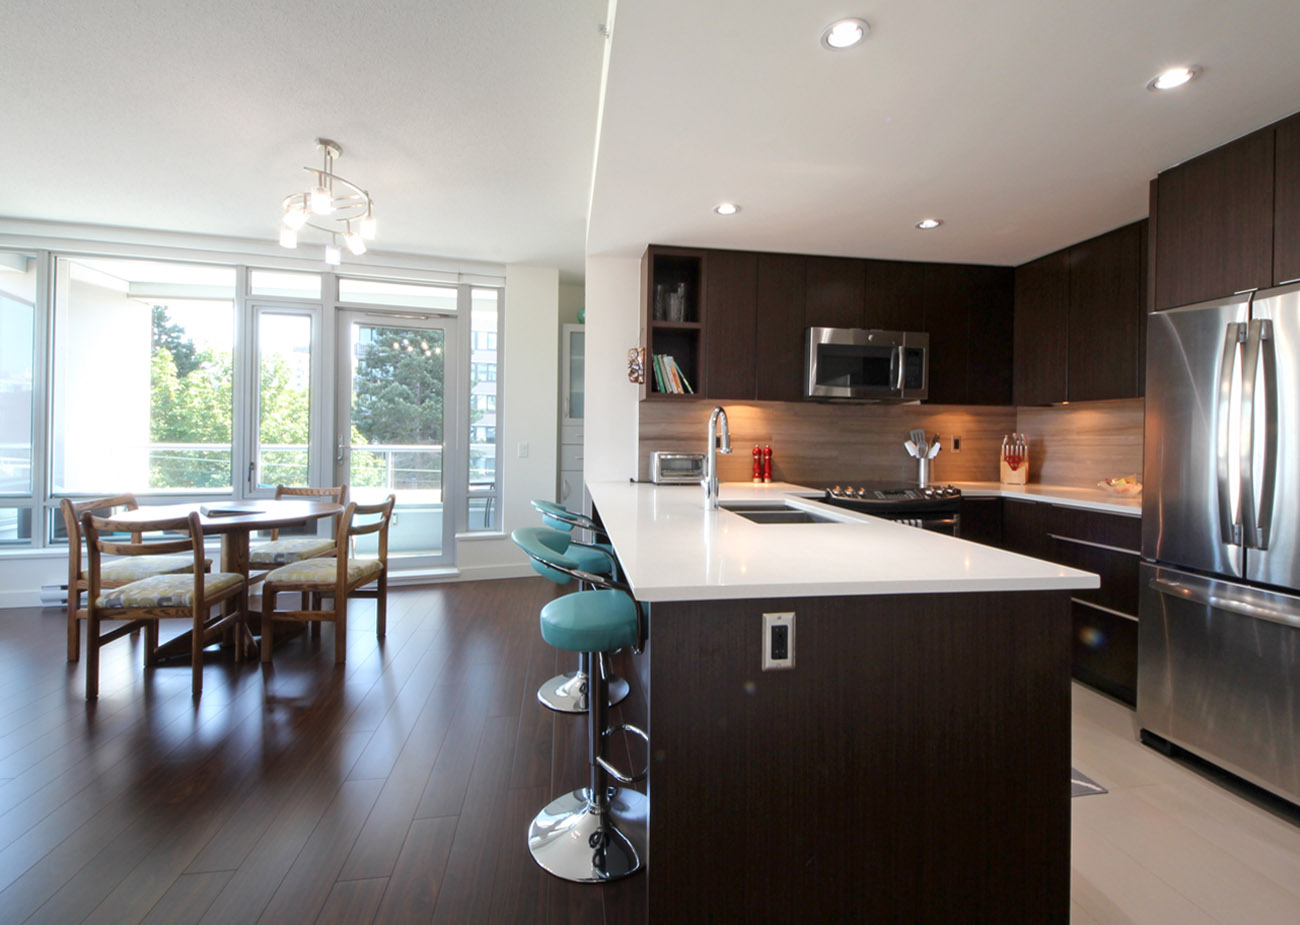 Kitchen and dining area with seating for four